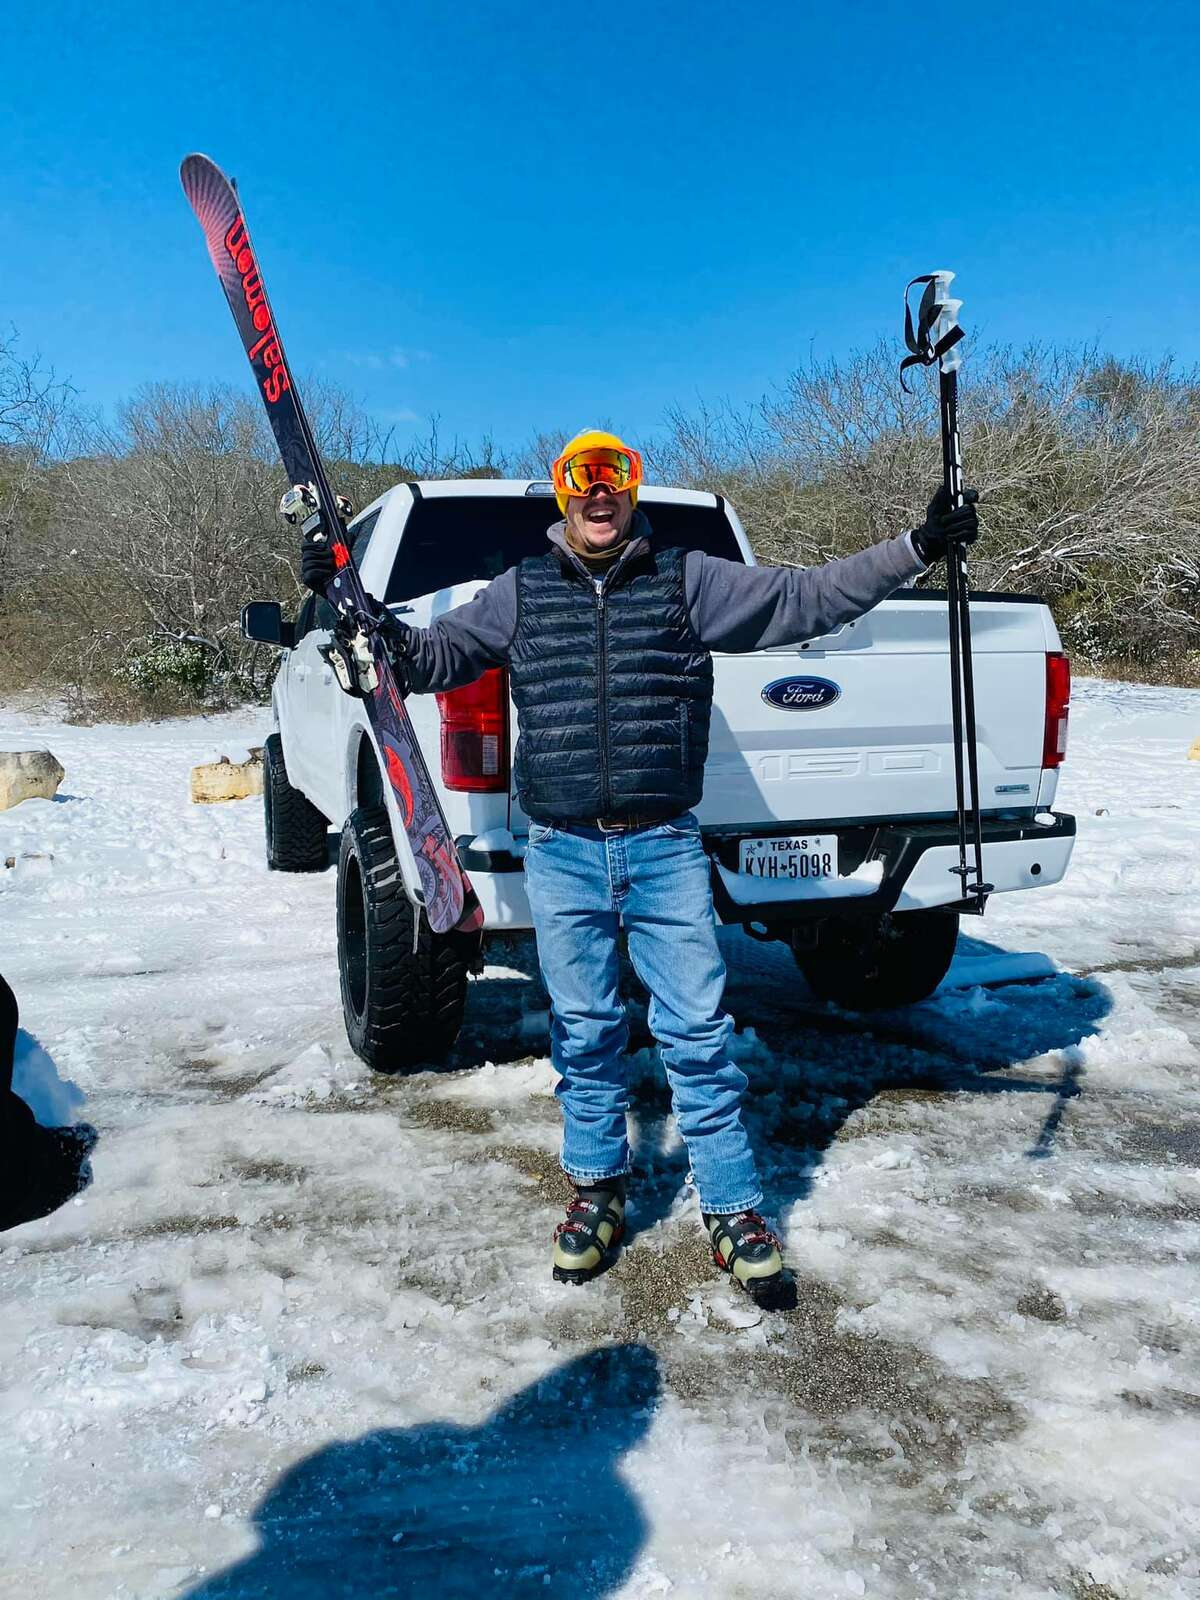 Paul Grigsby, 40, told MySA.com he knew the opportunity probably wouldn't come around again as it hardly snows in Texas.